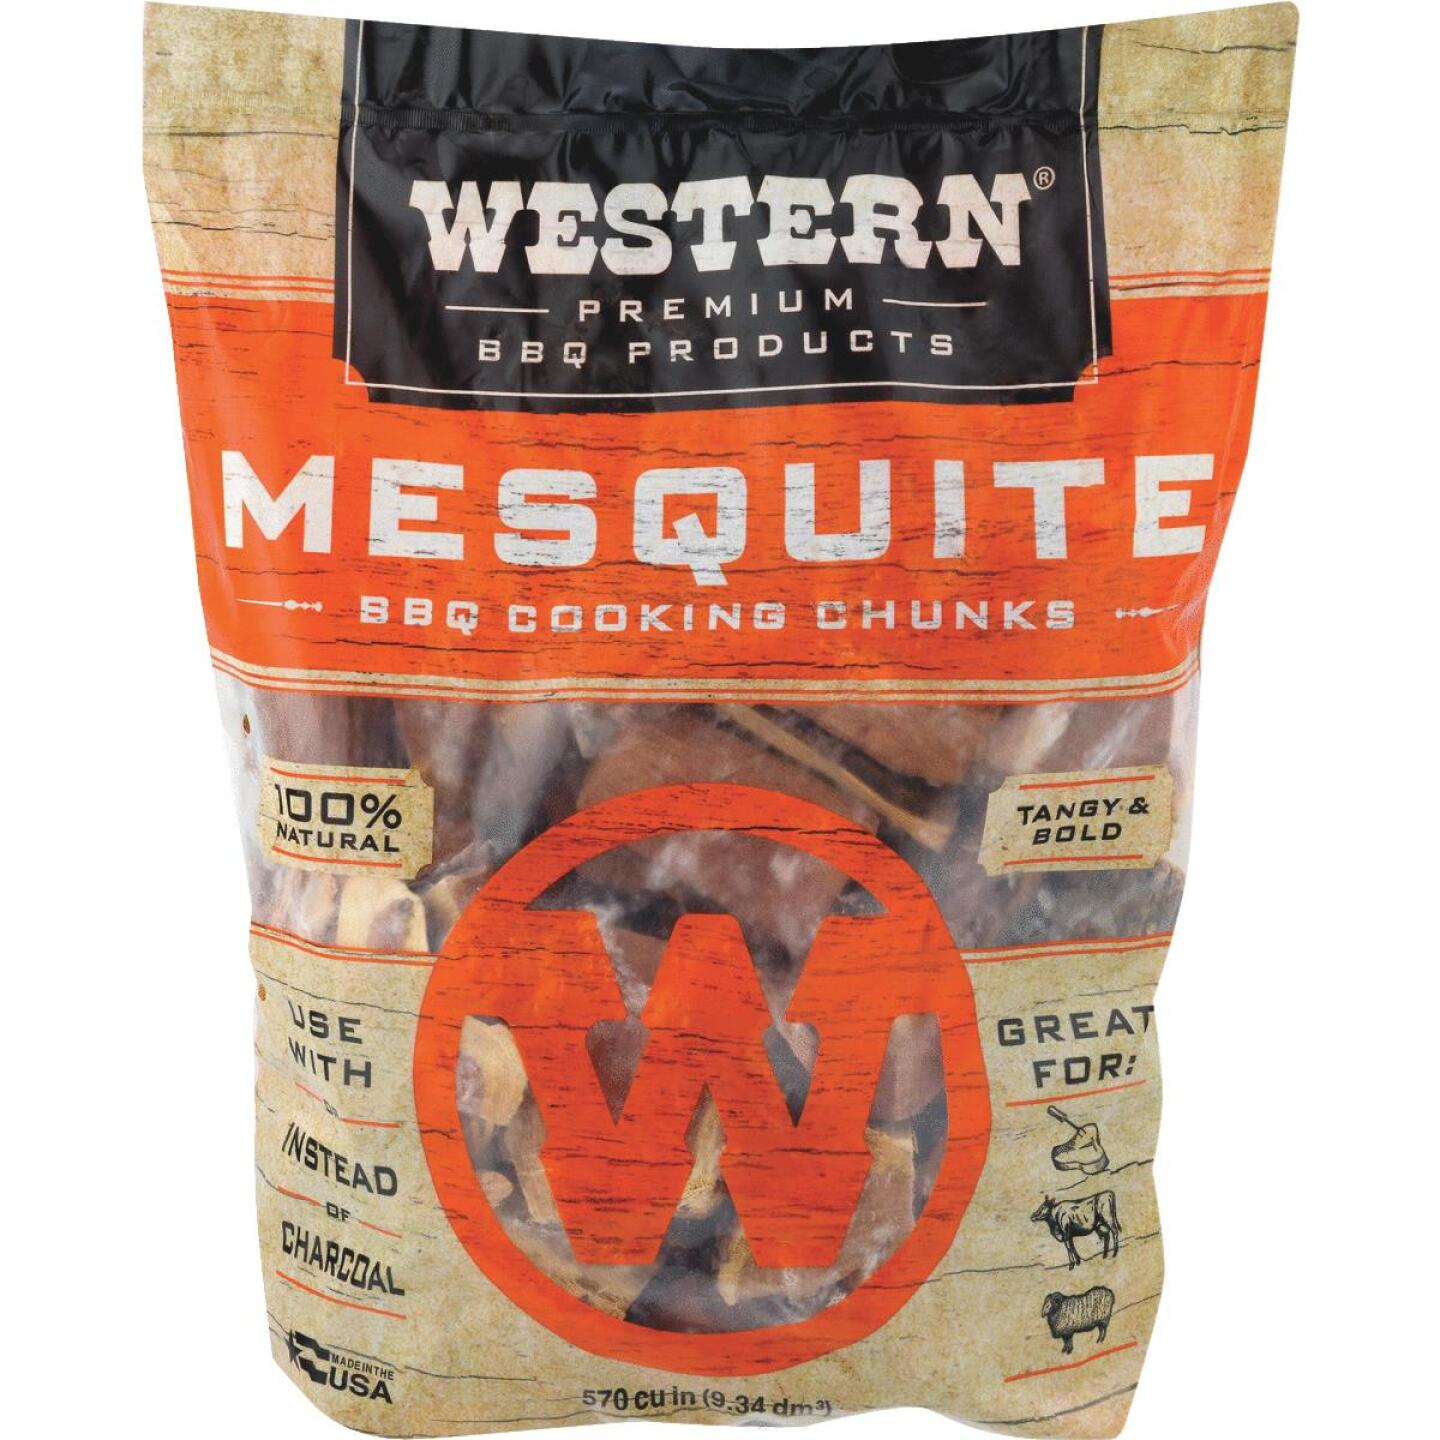 Western 6 Lb. Mesquite Wood Smoking Chunks Image 4